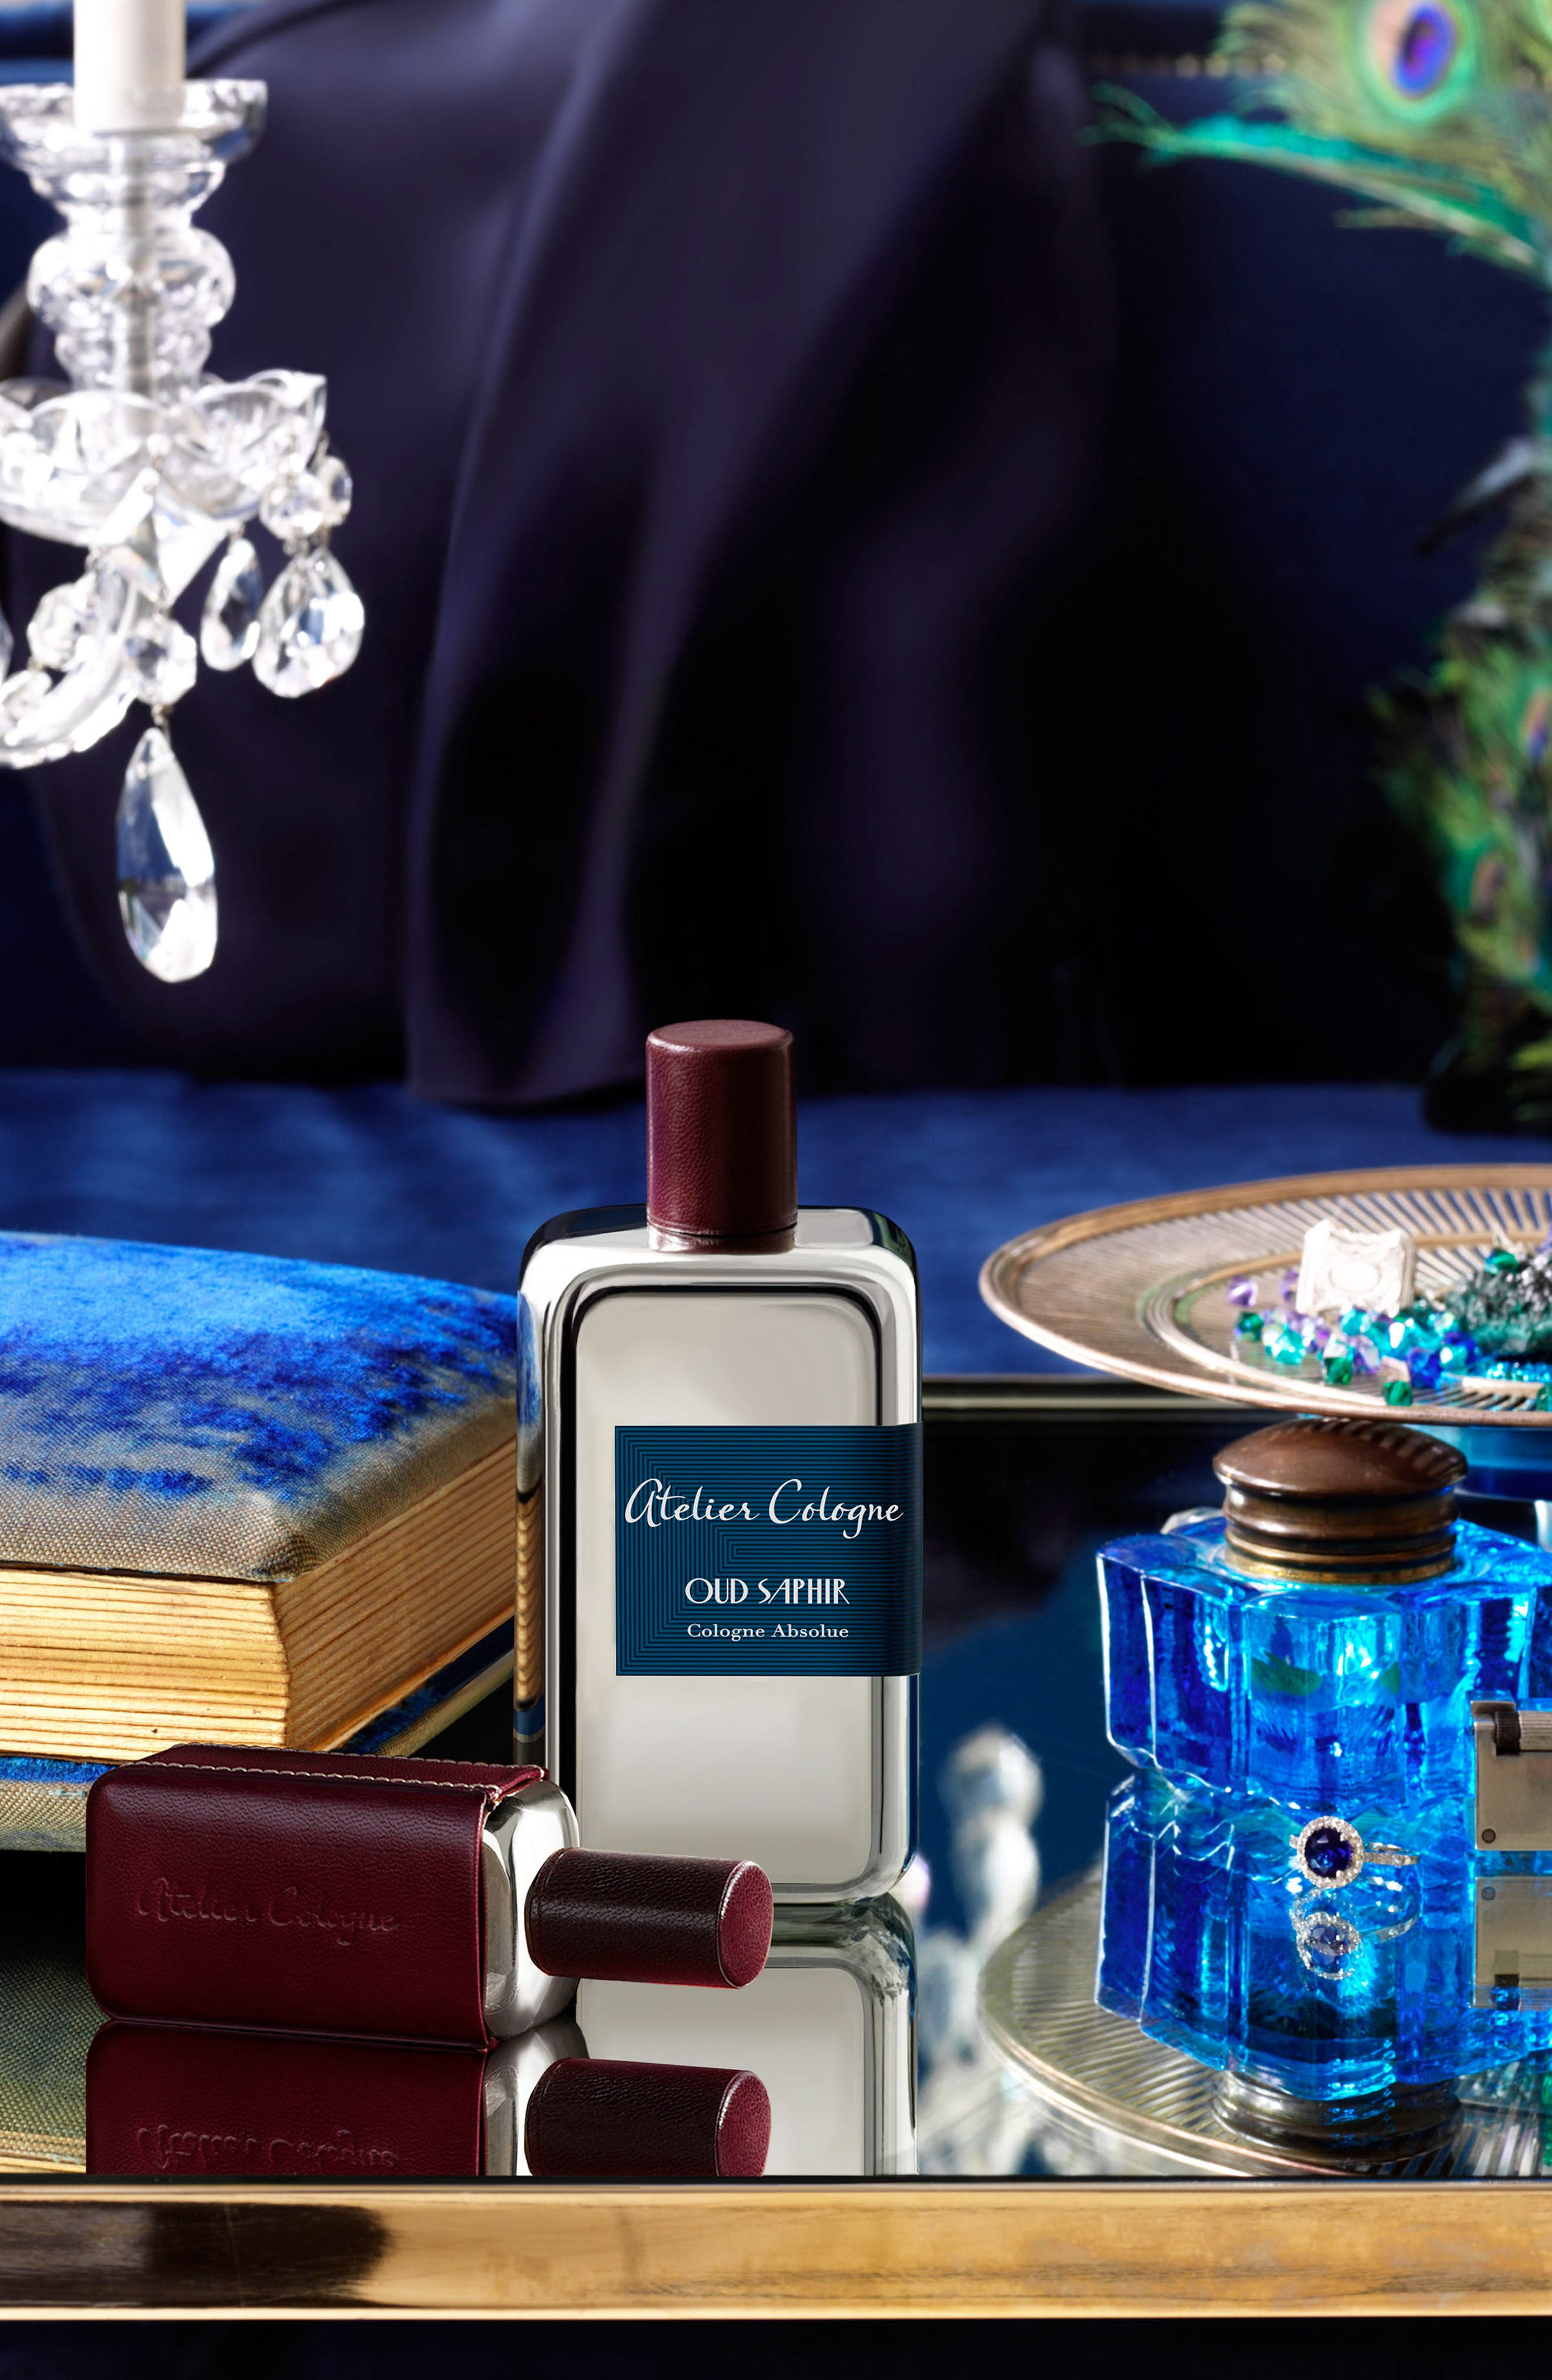 Alternate Image 3  - Atelier Cologne Oud Saphir Cologne Absolue